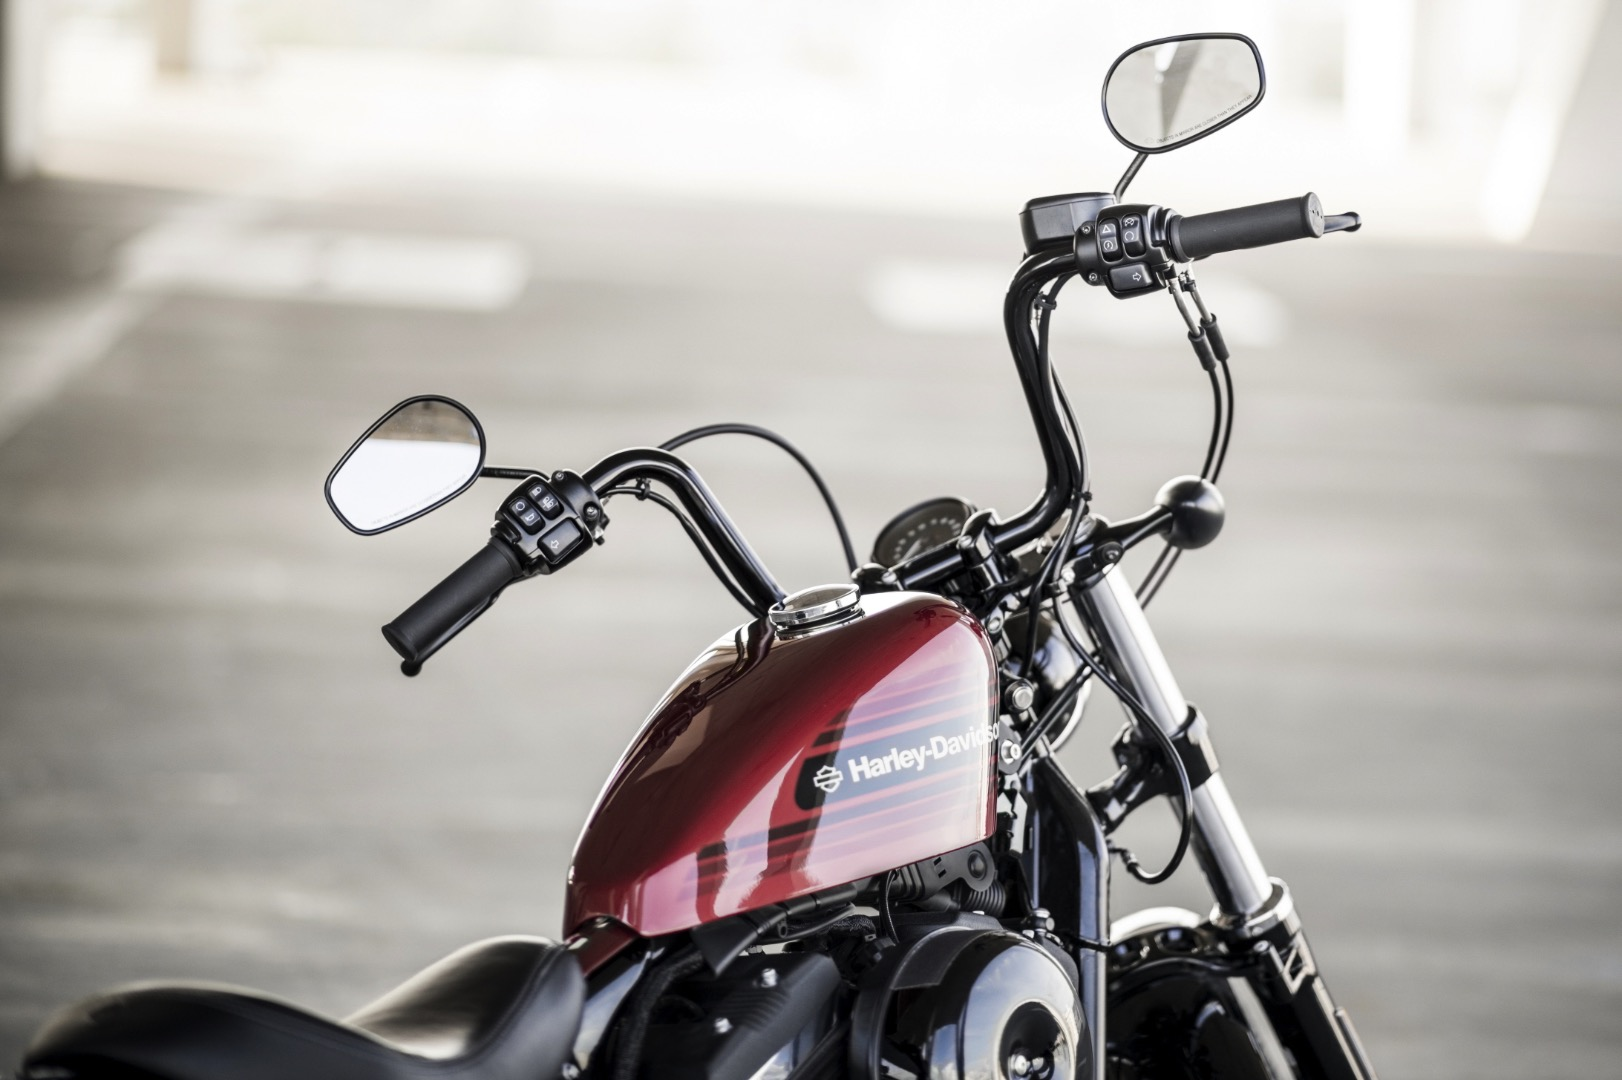 2018 Harley-Davidson Forty-Eight Special handlebars